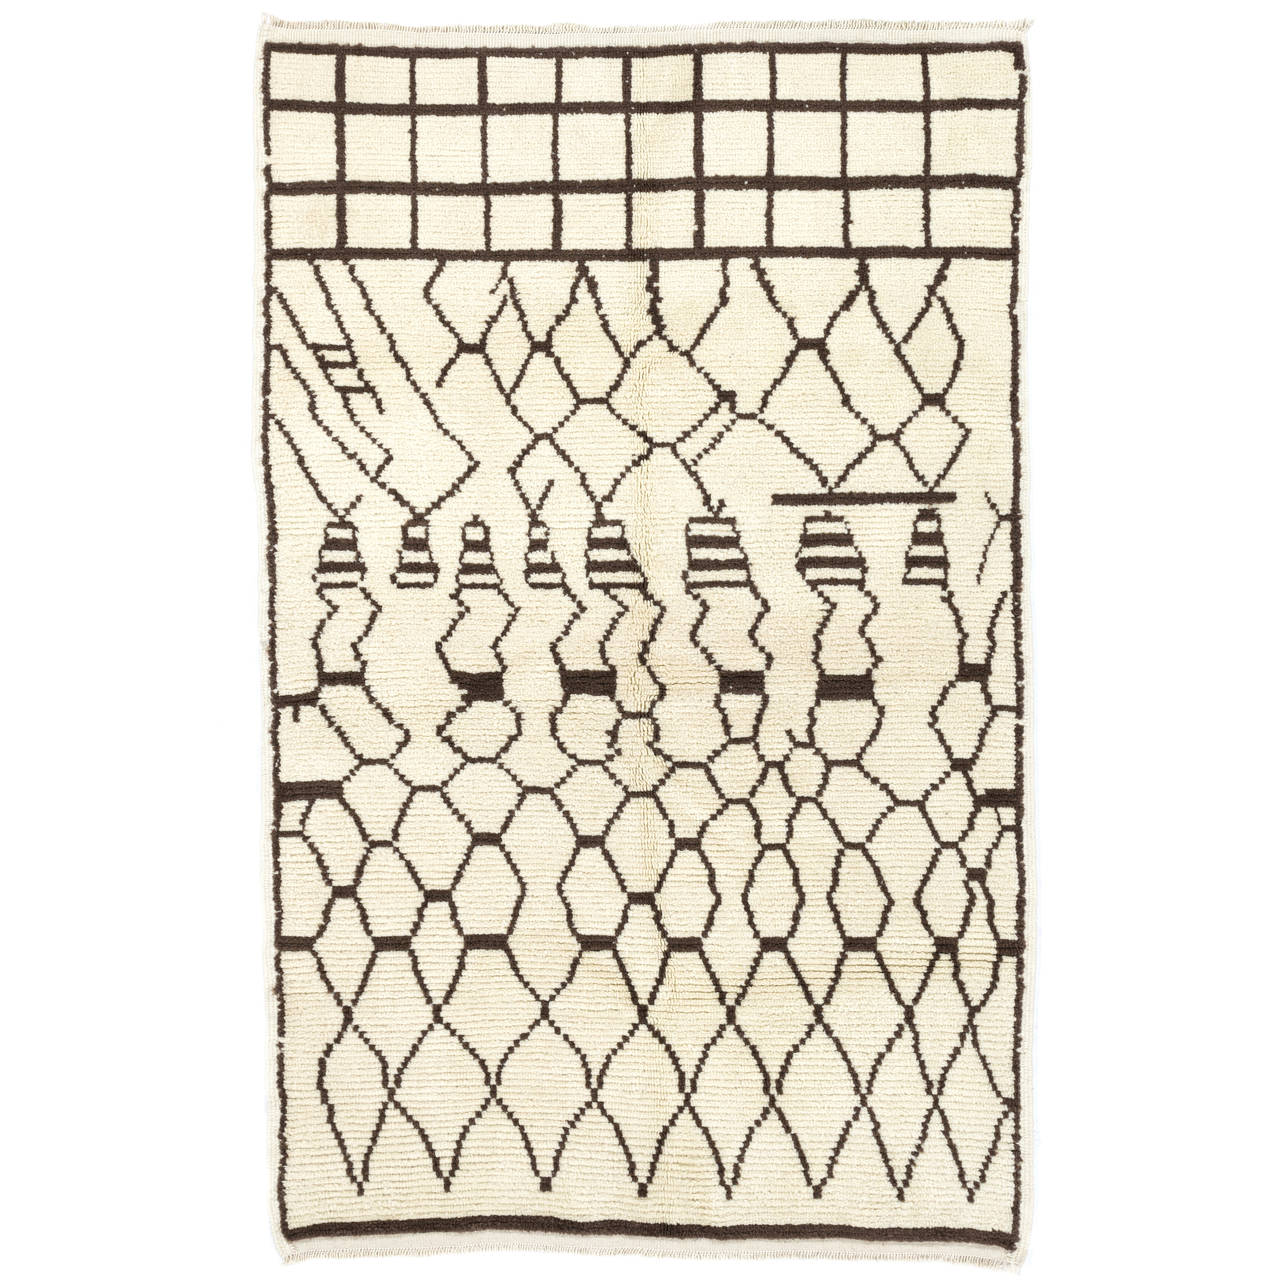 Moroccan Wool Rug in Ivory and Dark Brown